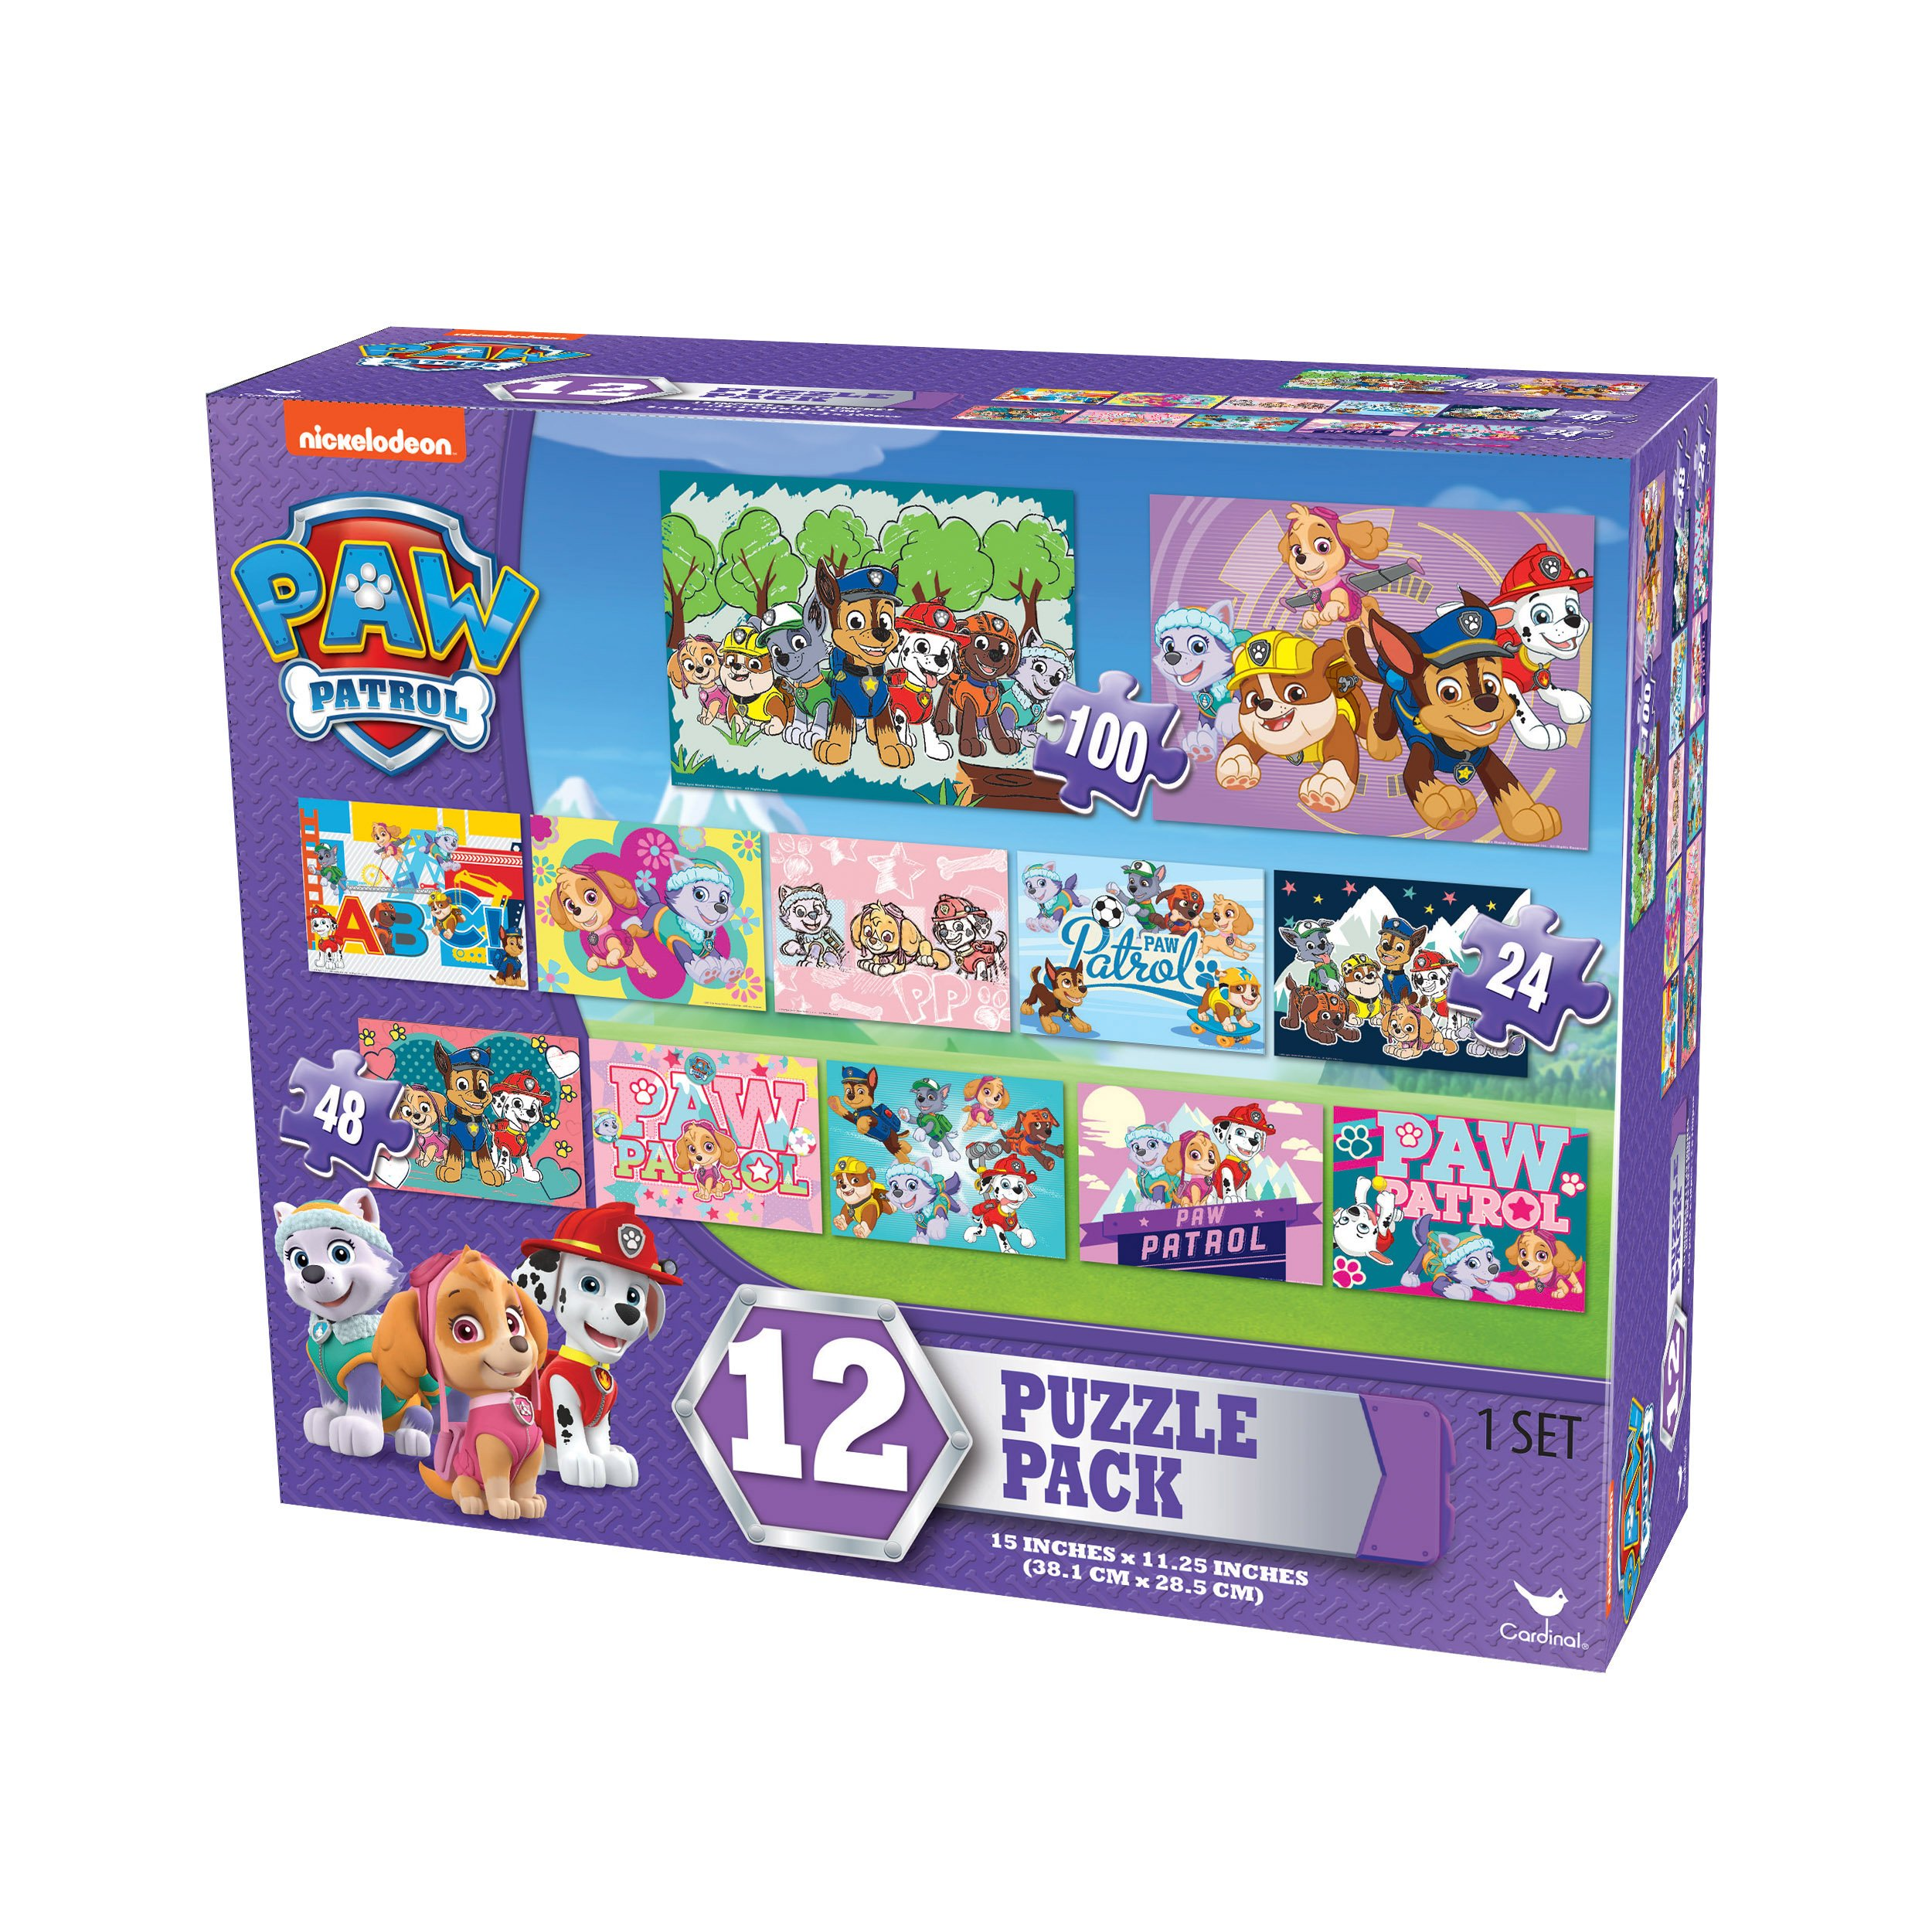 Nickelodeon Paw Patrol Girls 12 Puzzle Pack (24 Pieces)